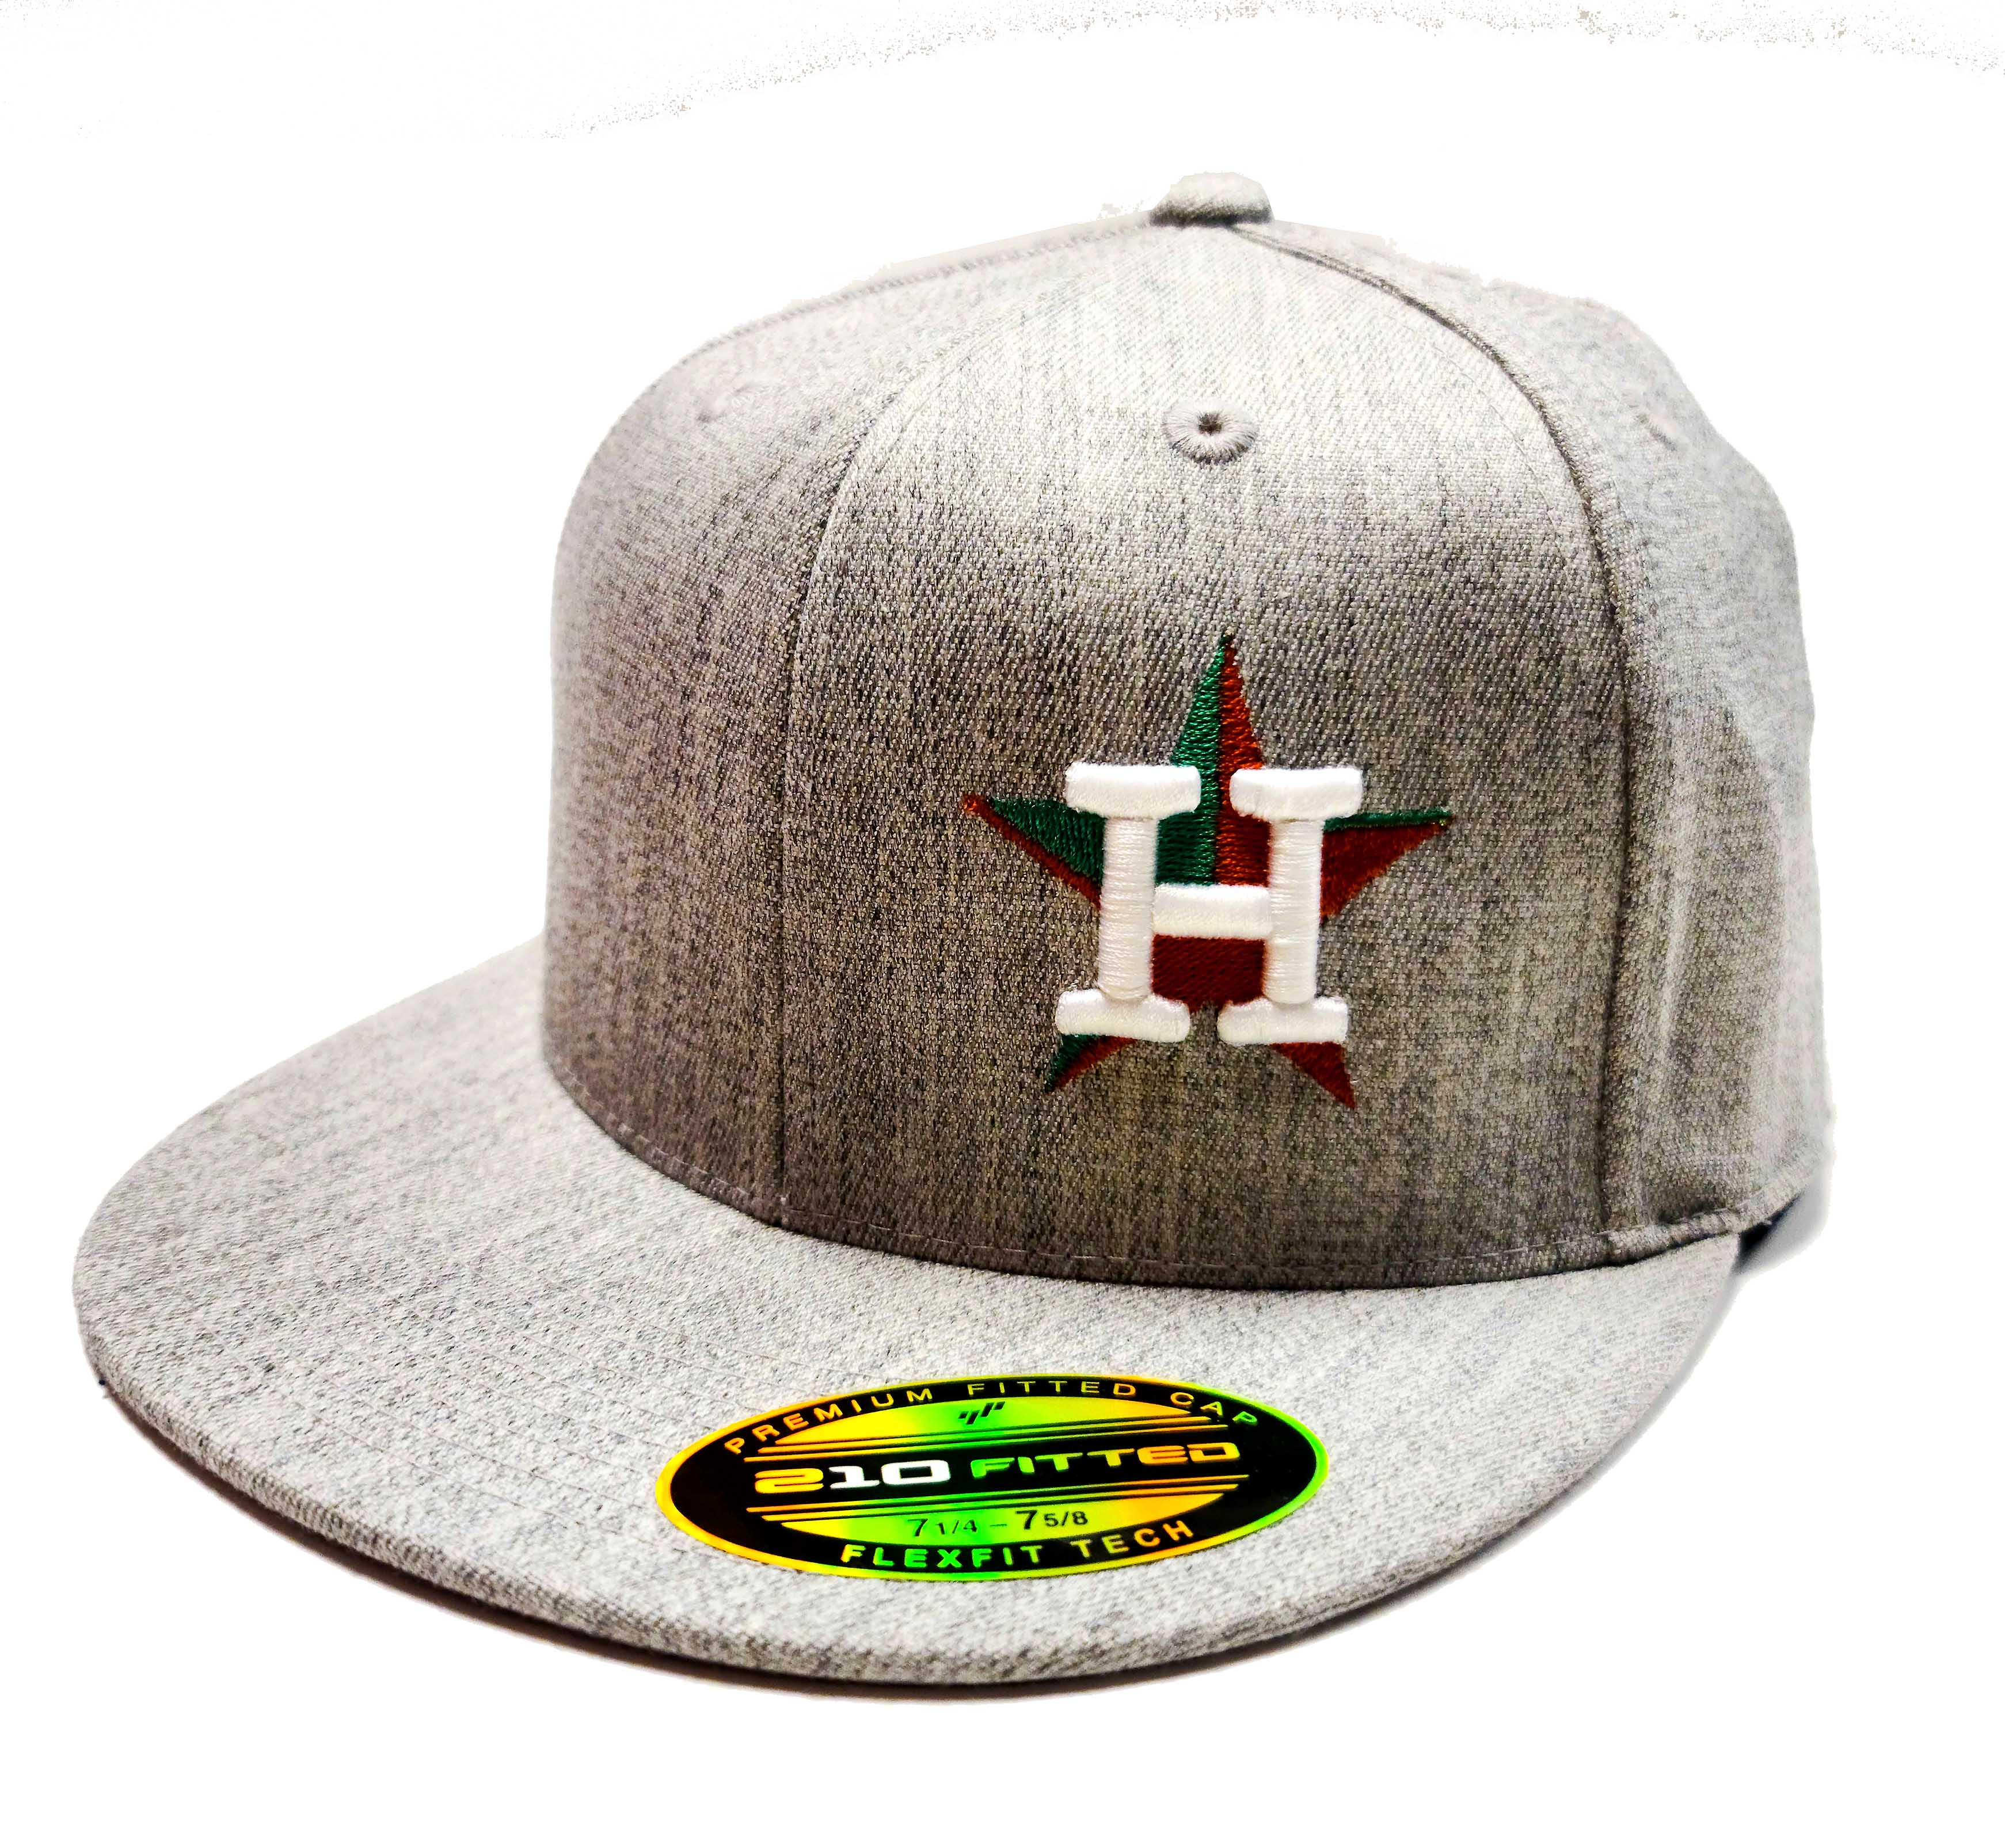 Houston Astros Semi Fitted Cap with Mexican Flag